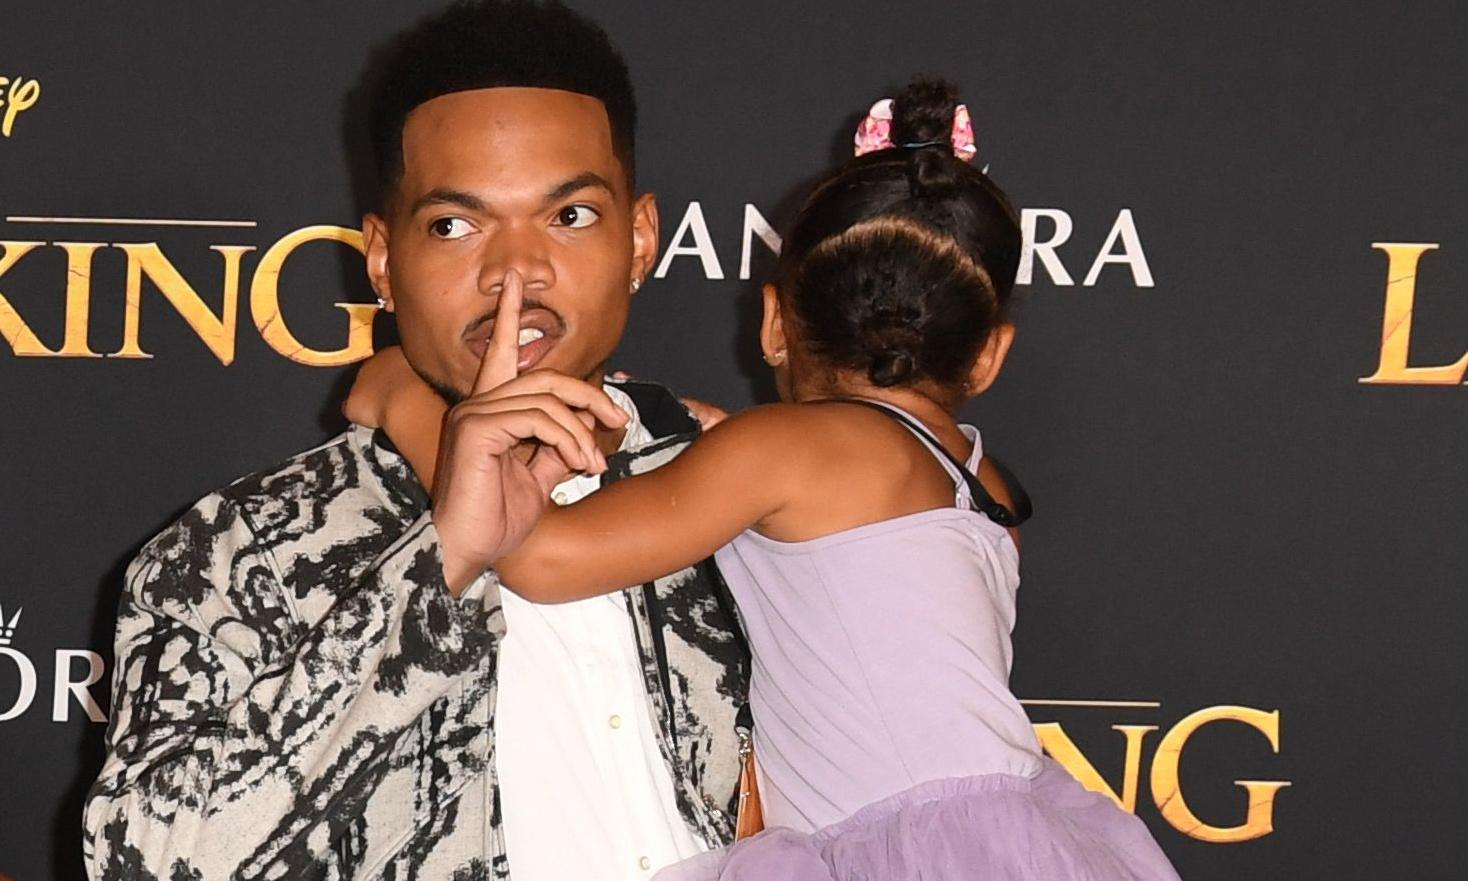 Chance the Rapper was The Lion King's 'nostalgia consultant'. That's not the oddest movie credit